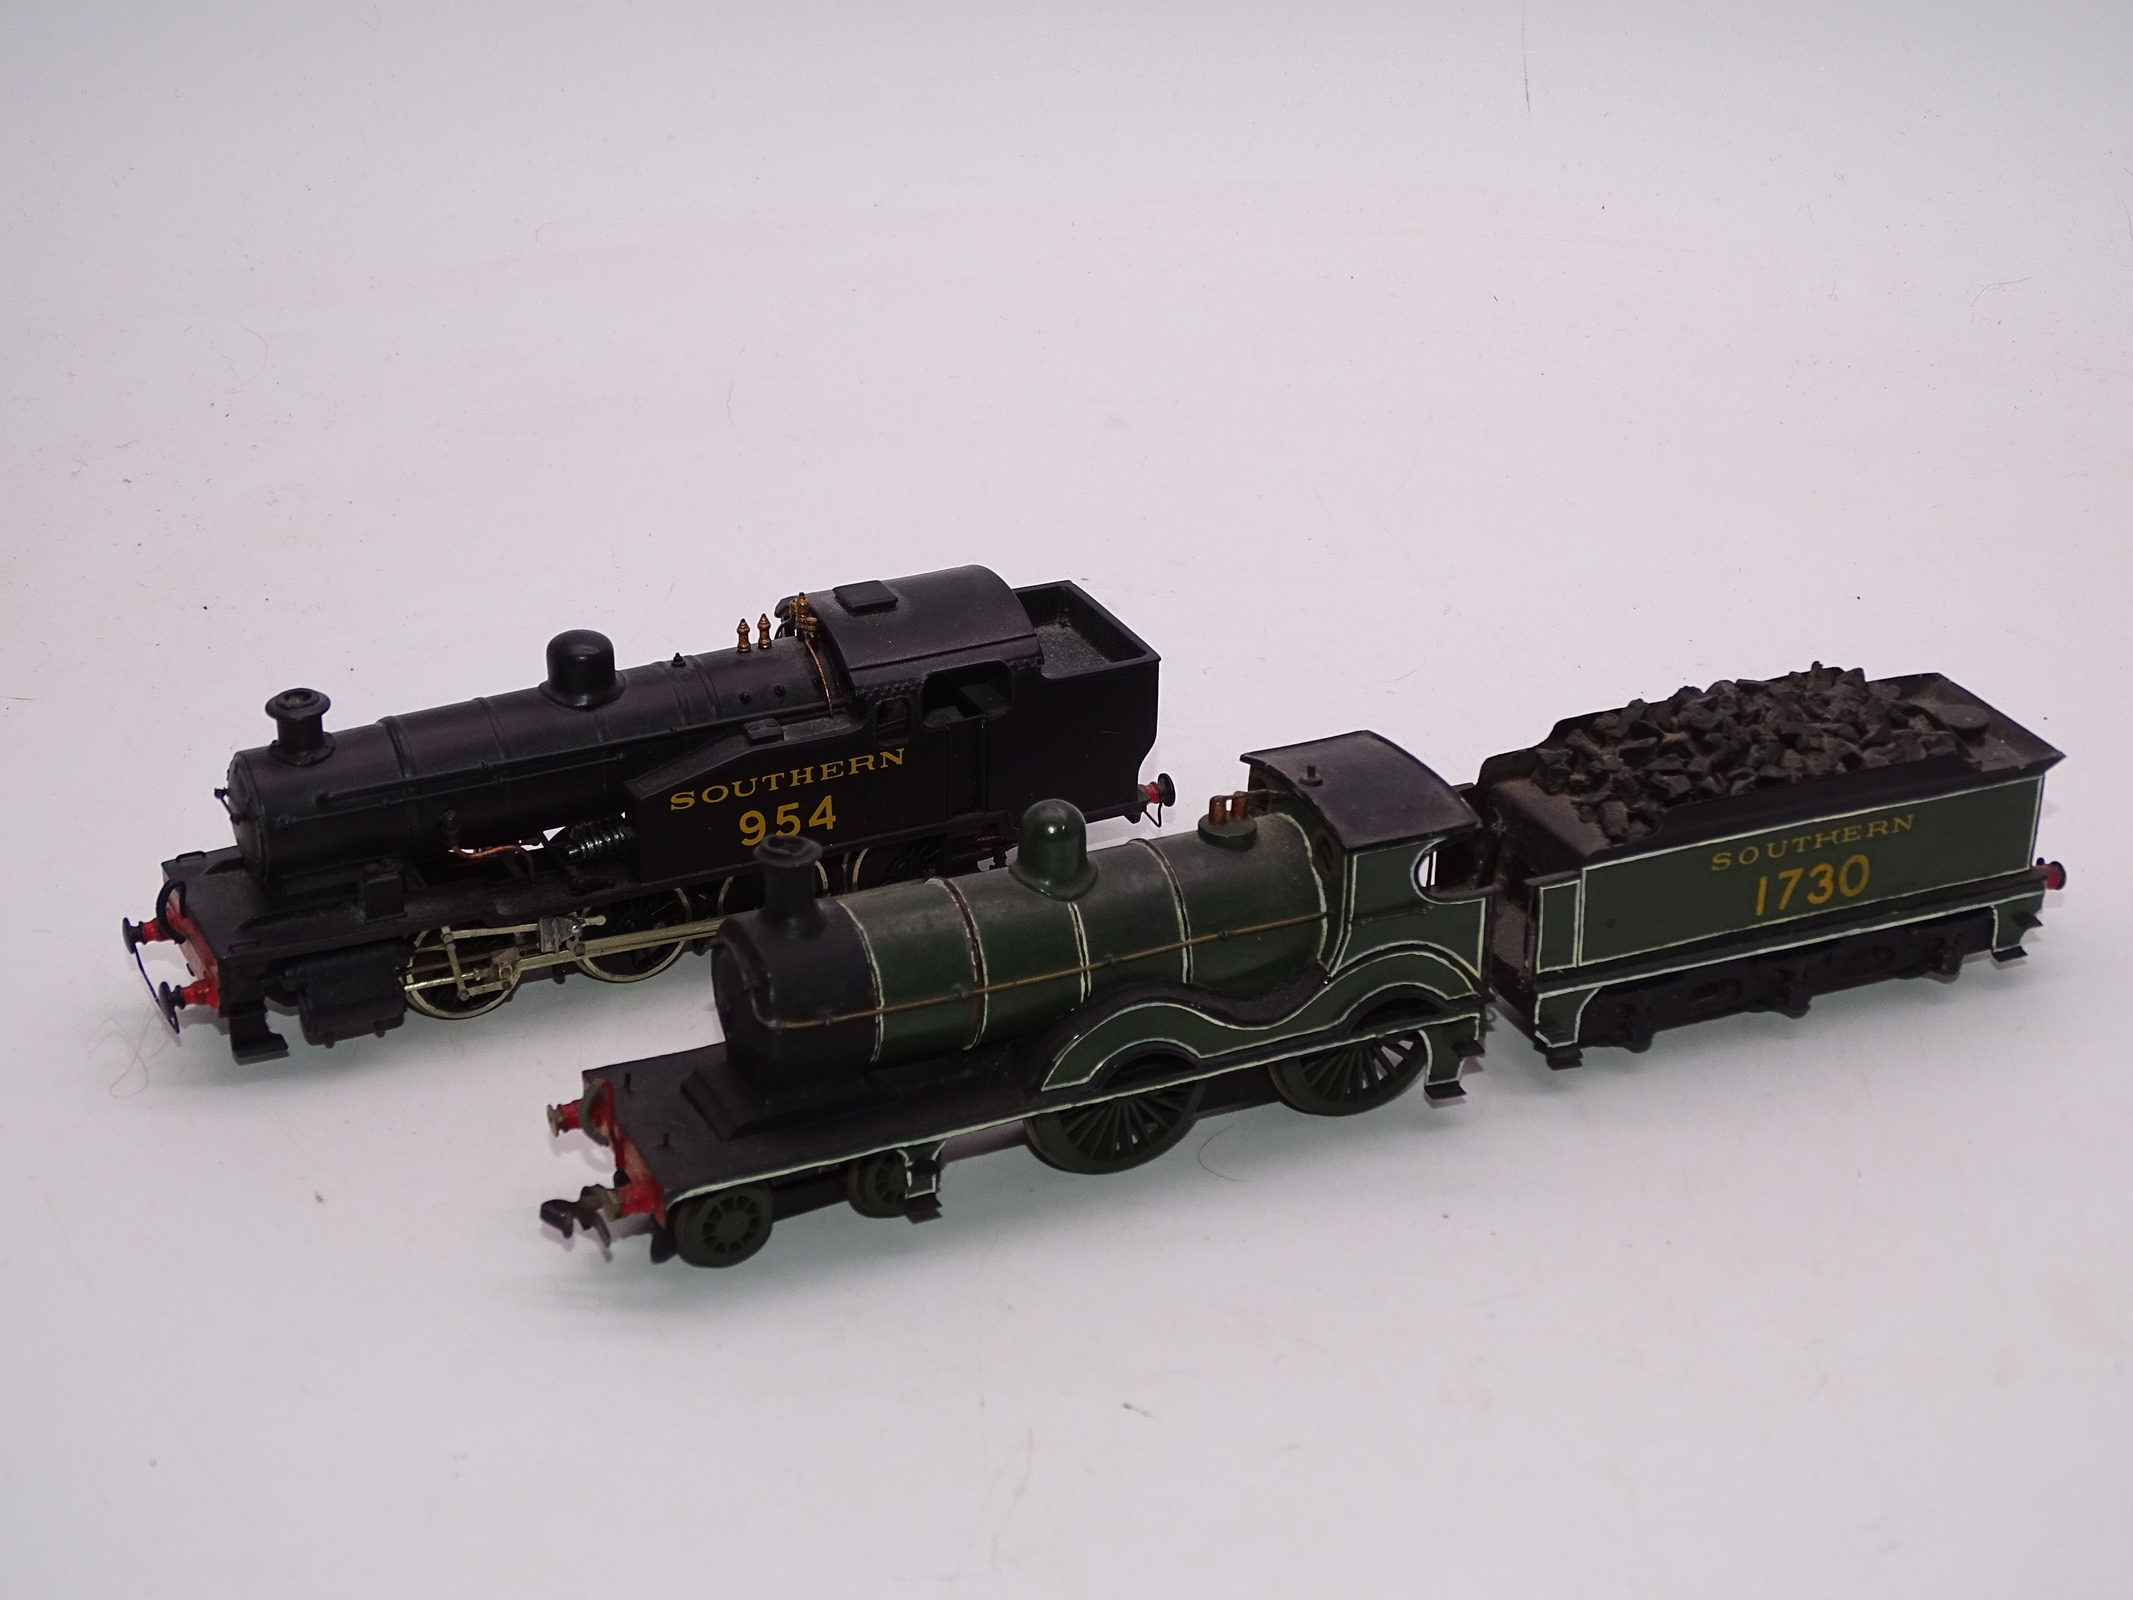 Lot 37 - OO Gauge -A Pair of kit built OO Gauge steam locomotives comprising a Class D numbered 1730 and a